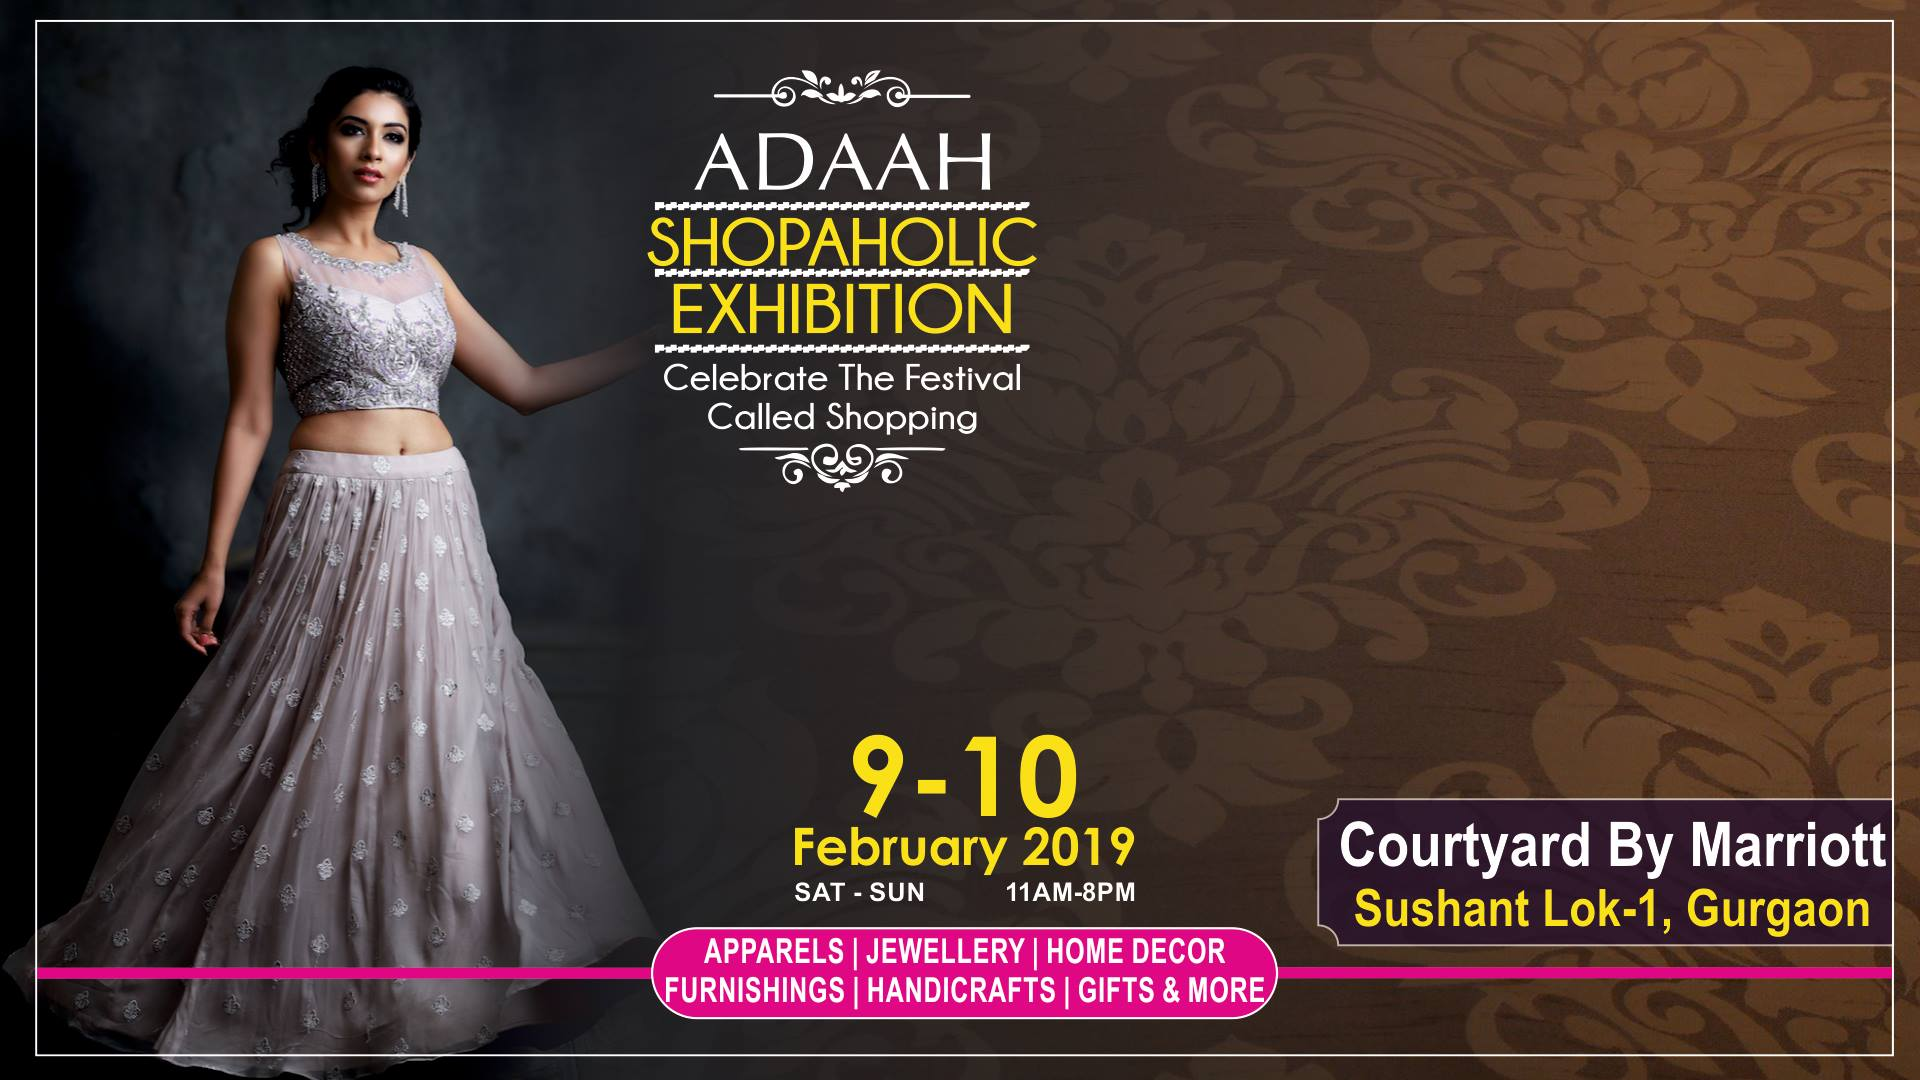 Adaah Shopaholic Exhibition 9-10 Feb at Courtyard Marriott, Ggn